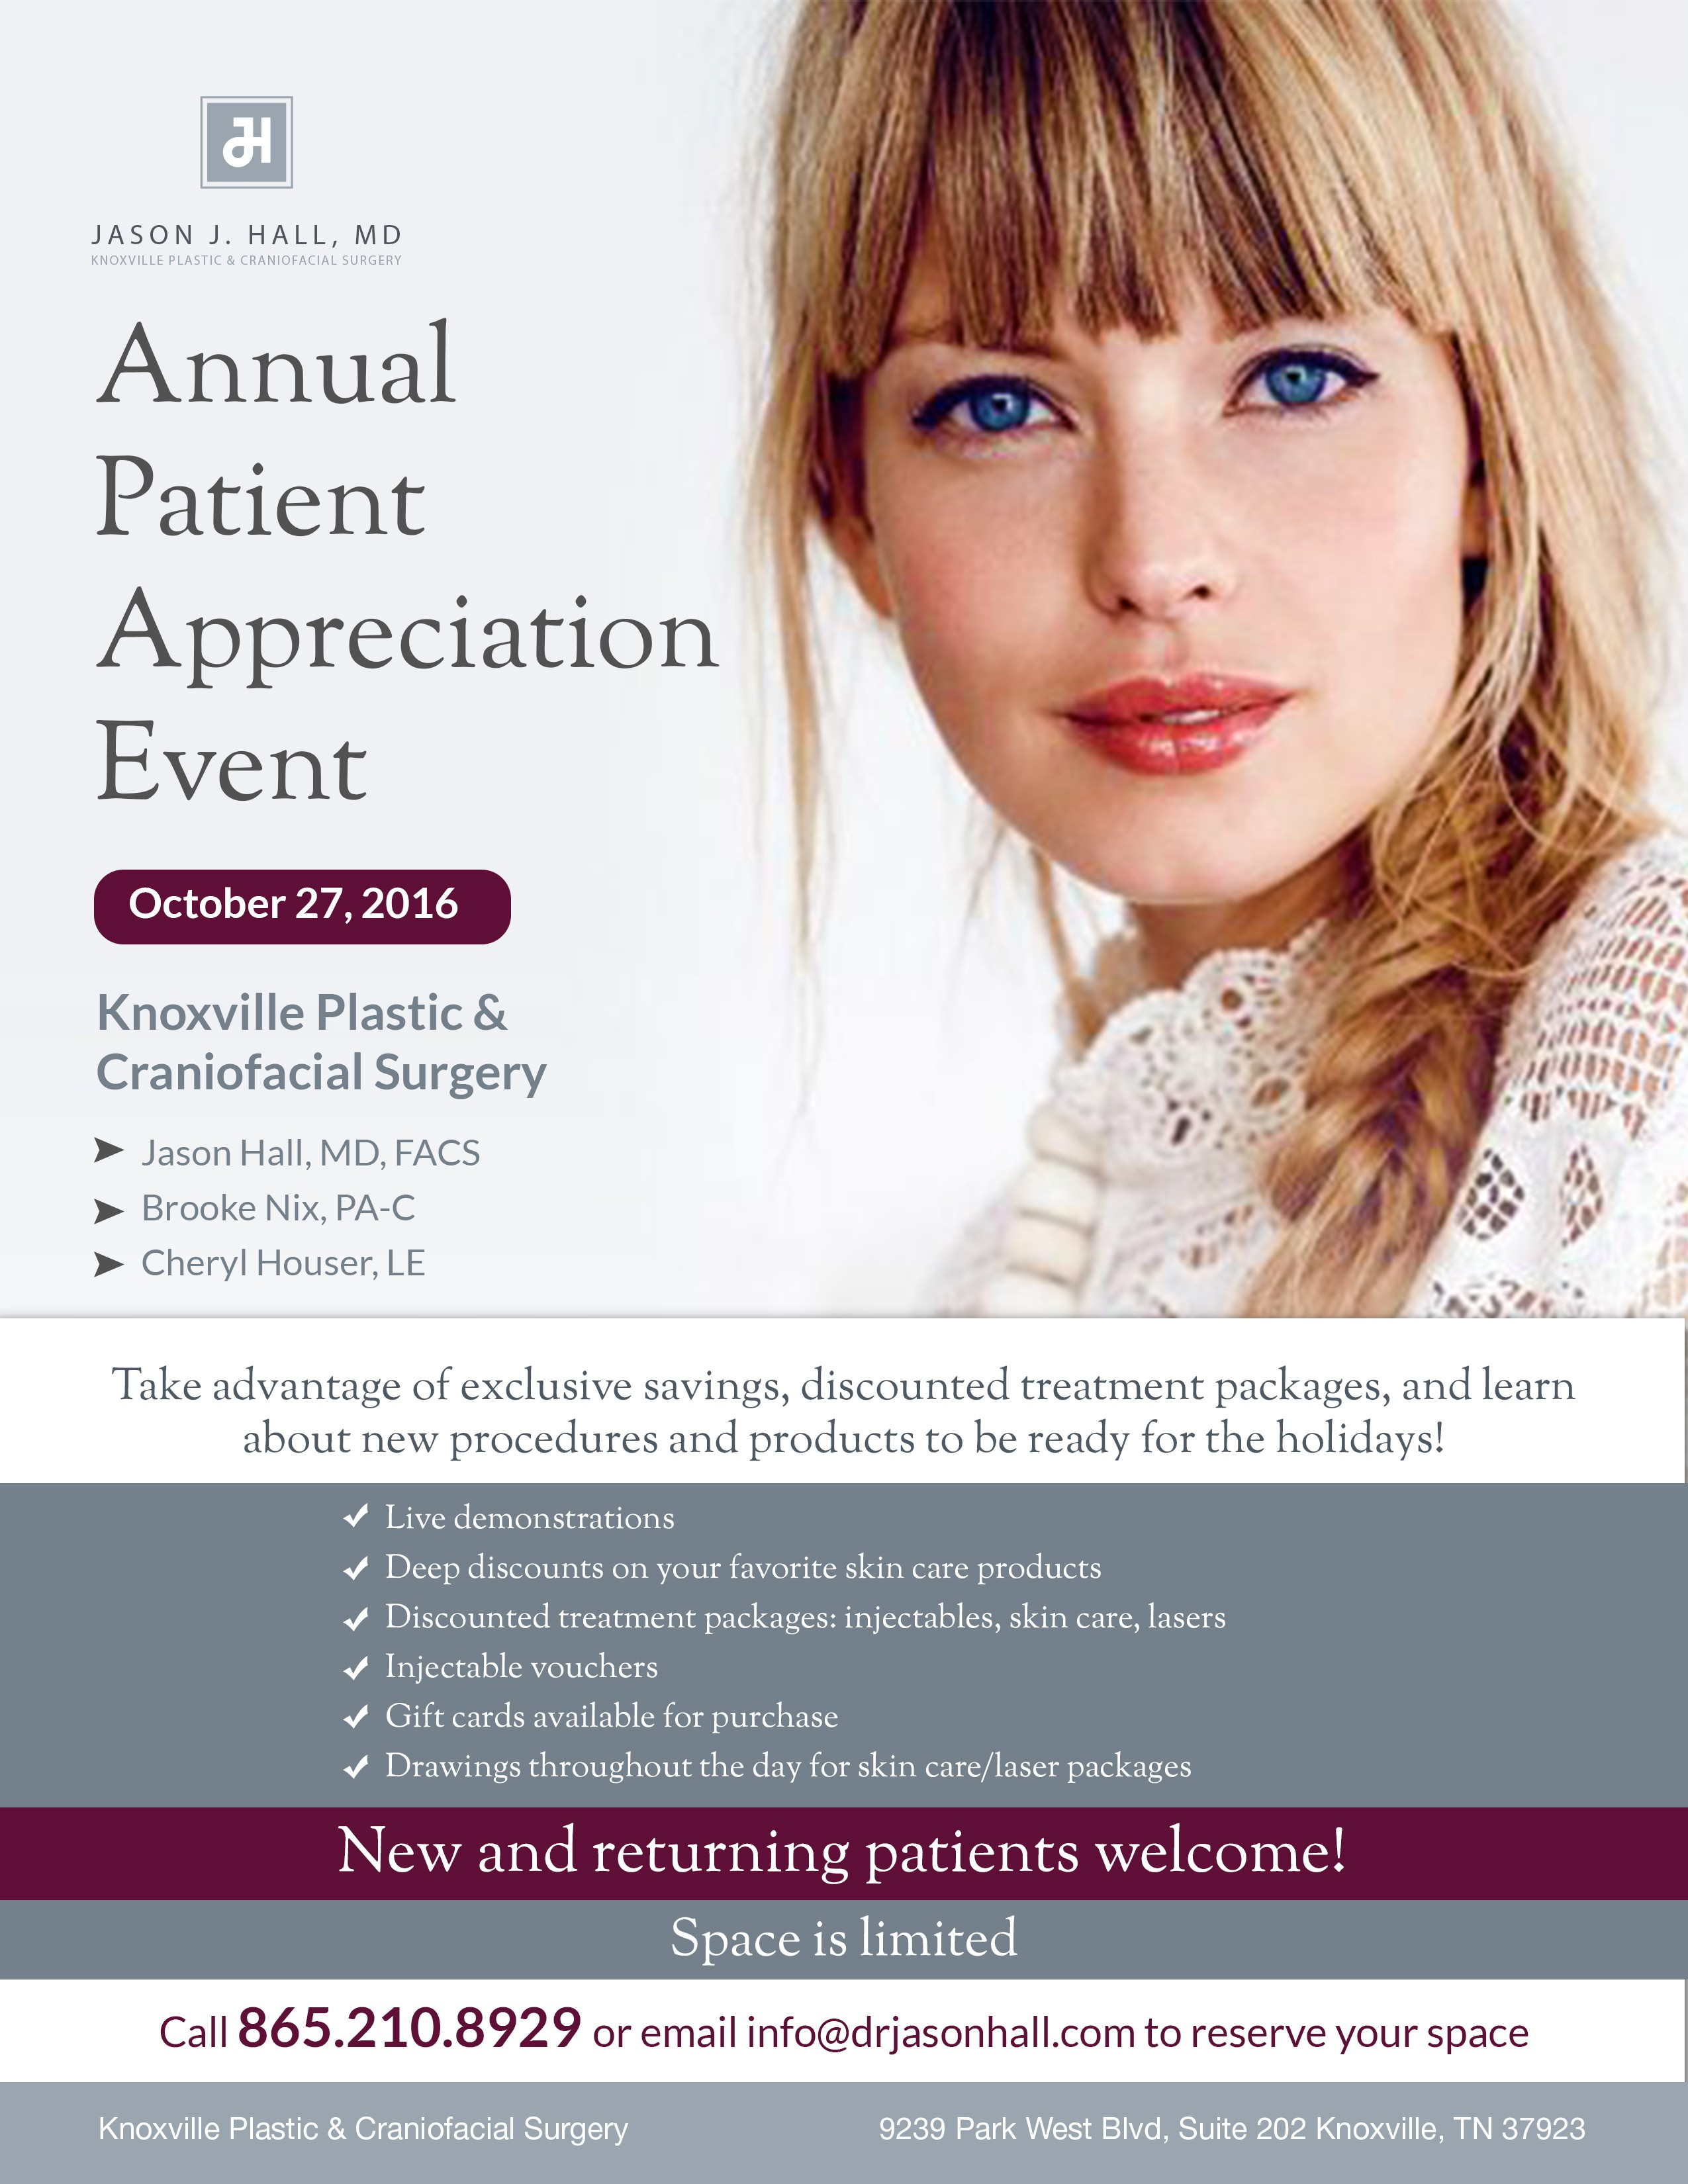 Create a print/web ad for cosmetic plastic surgery practice